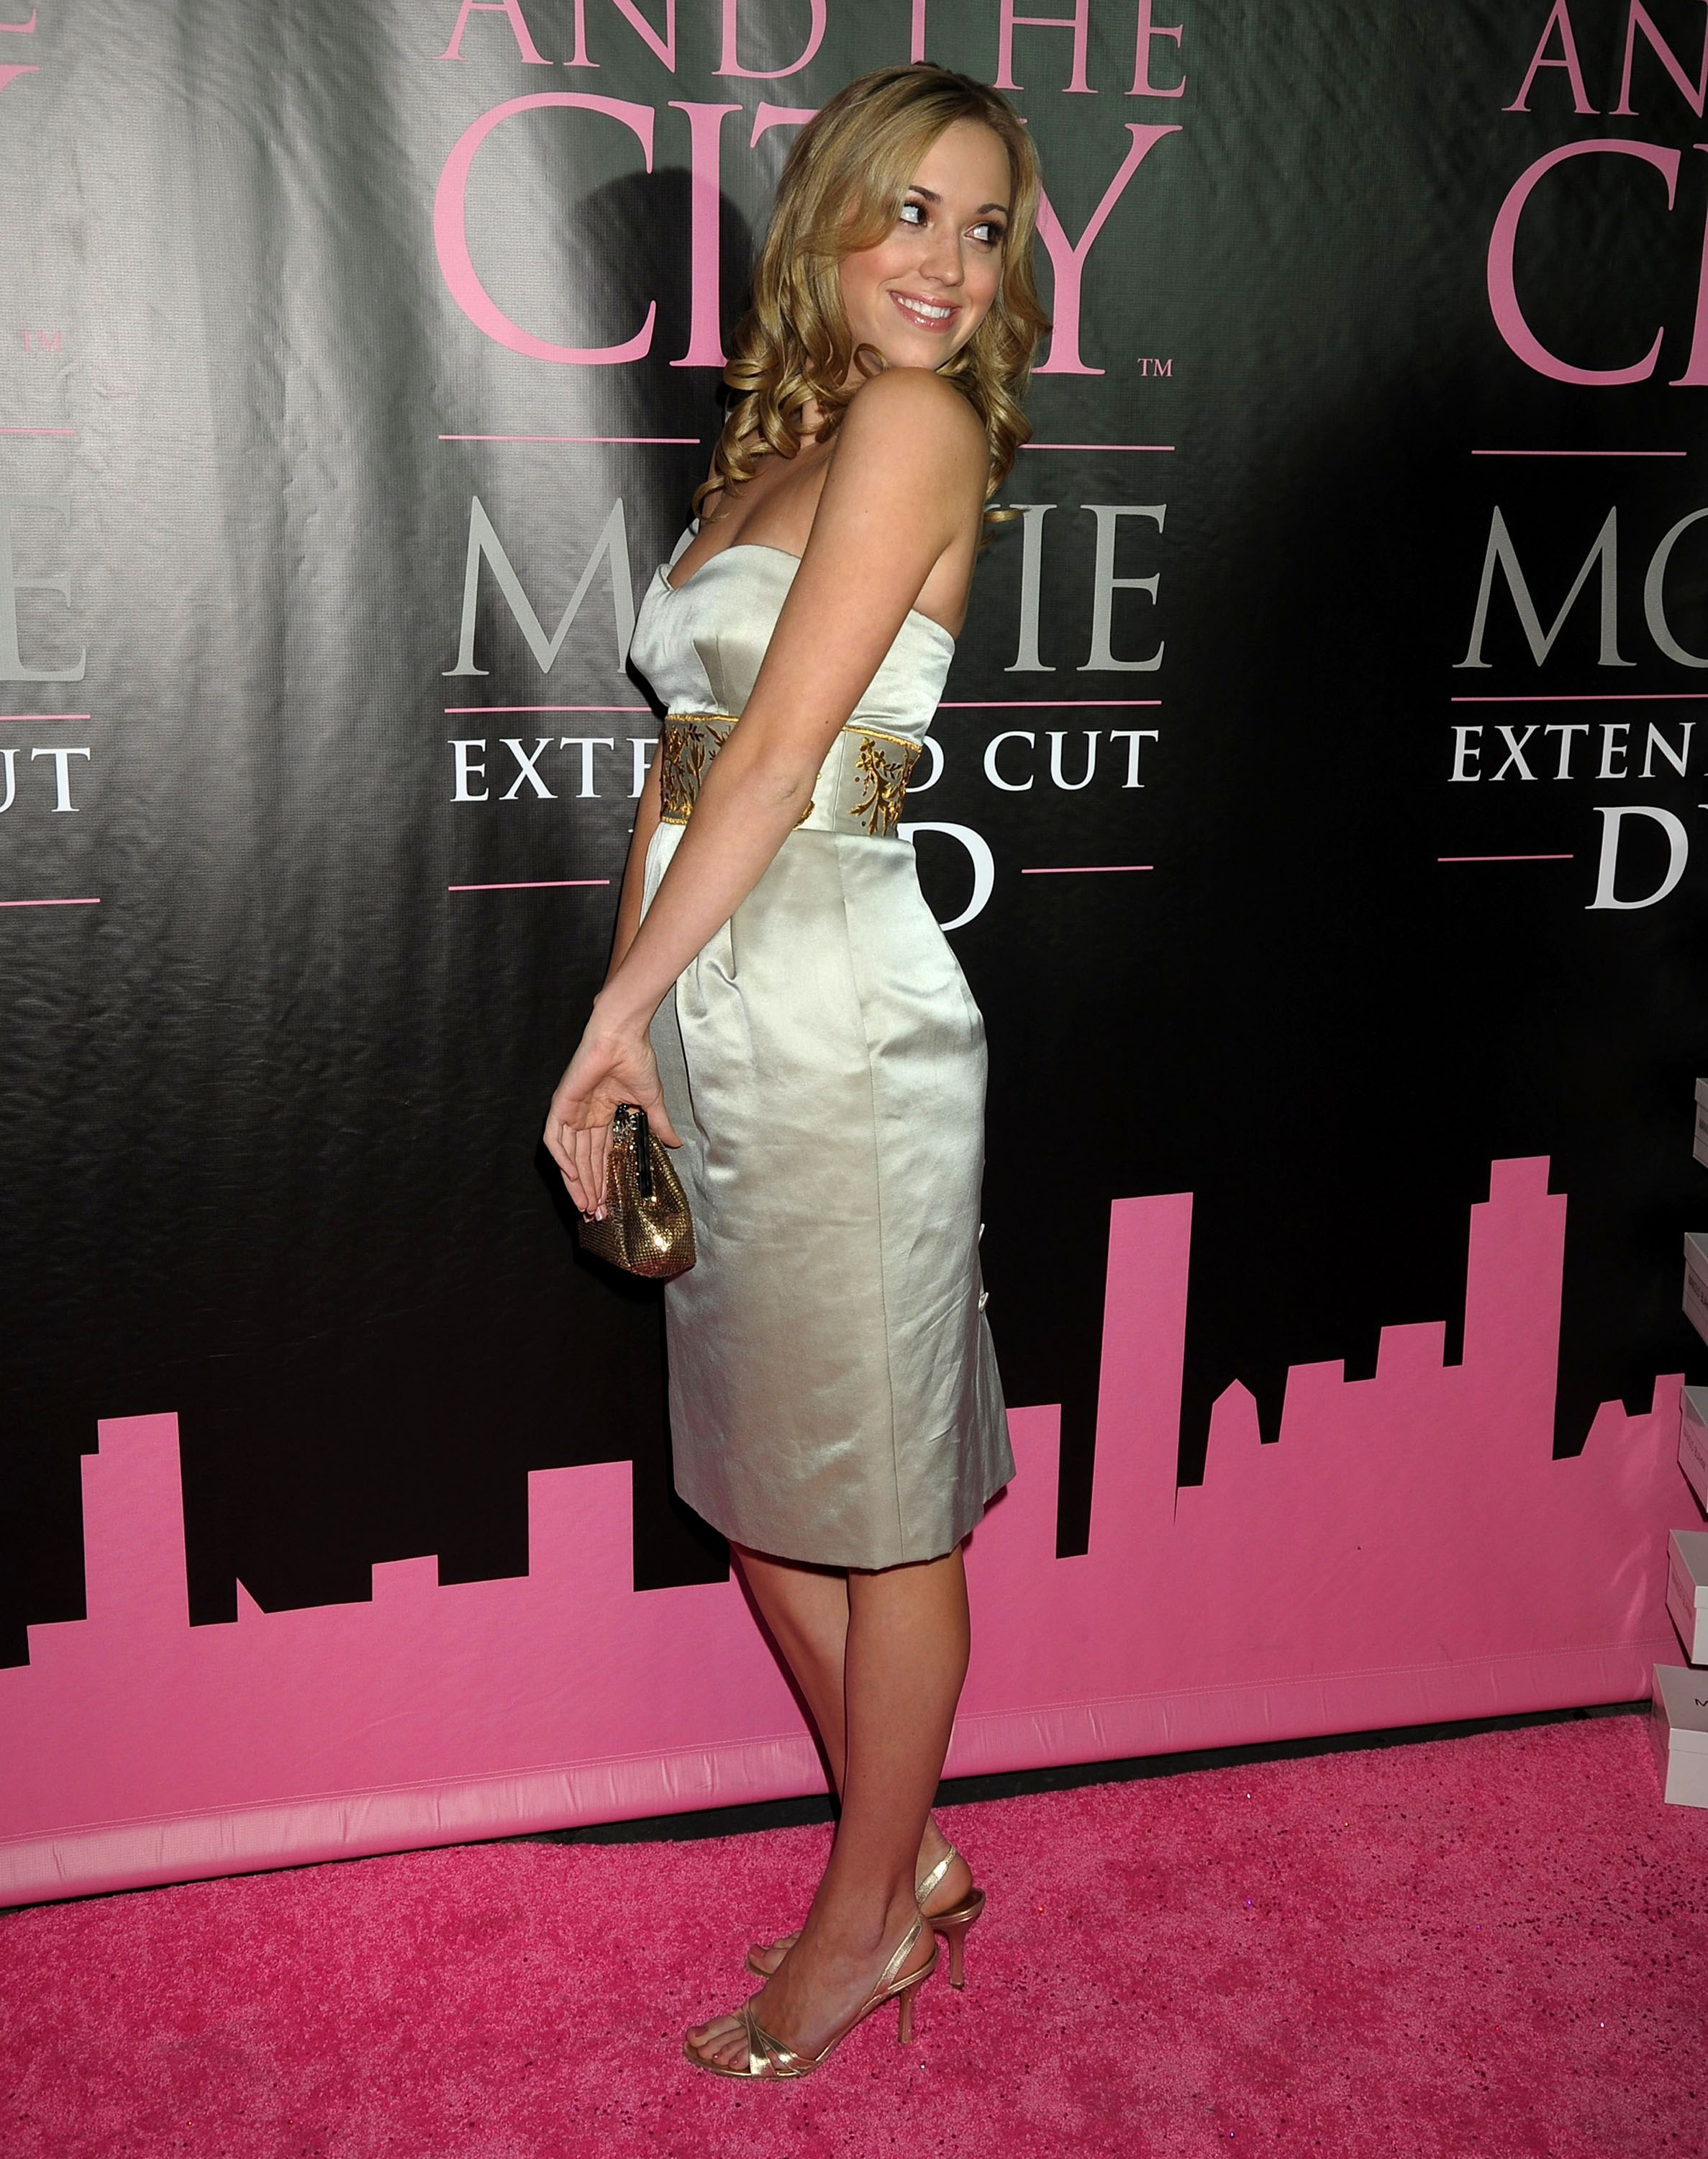 27001_Andrea_Bowen_-_73Sex_and_the_City-_The_Movie28_DVD_launch_CU_ISA_0008_122_1134lo.jpg